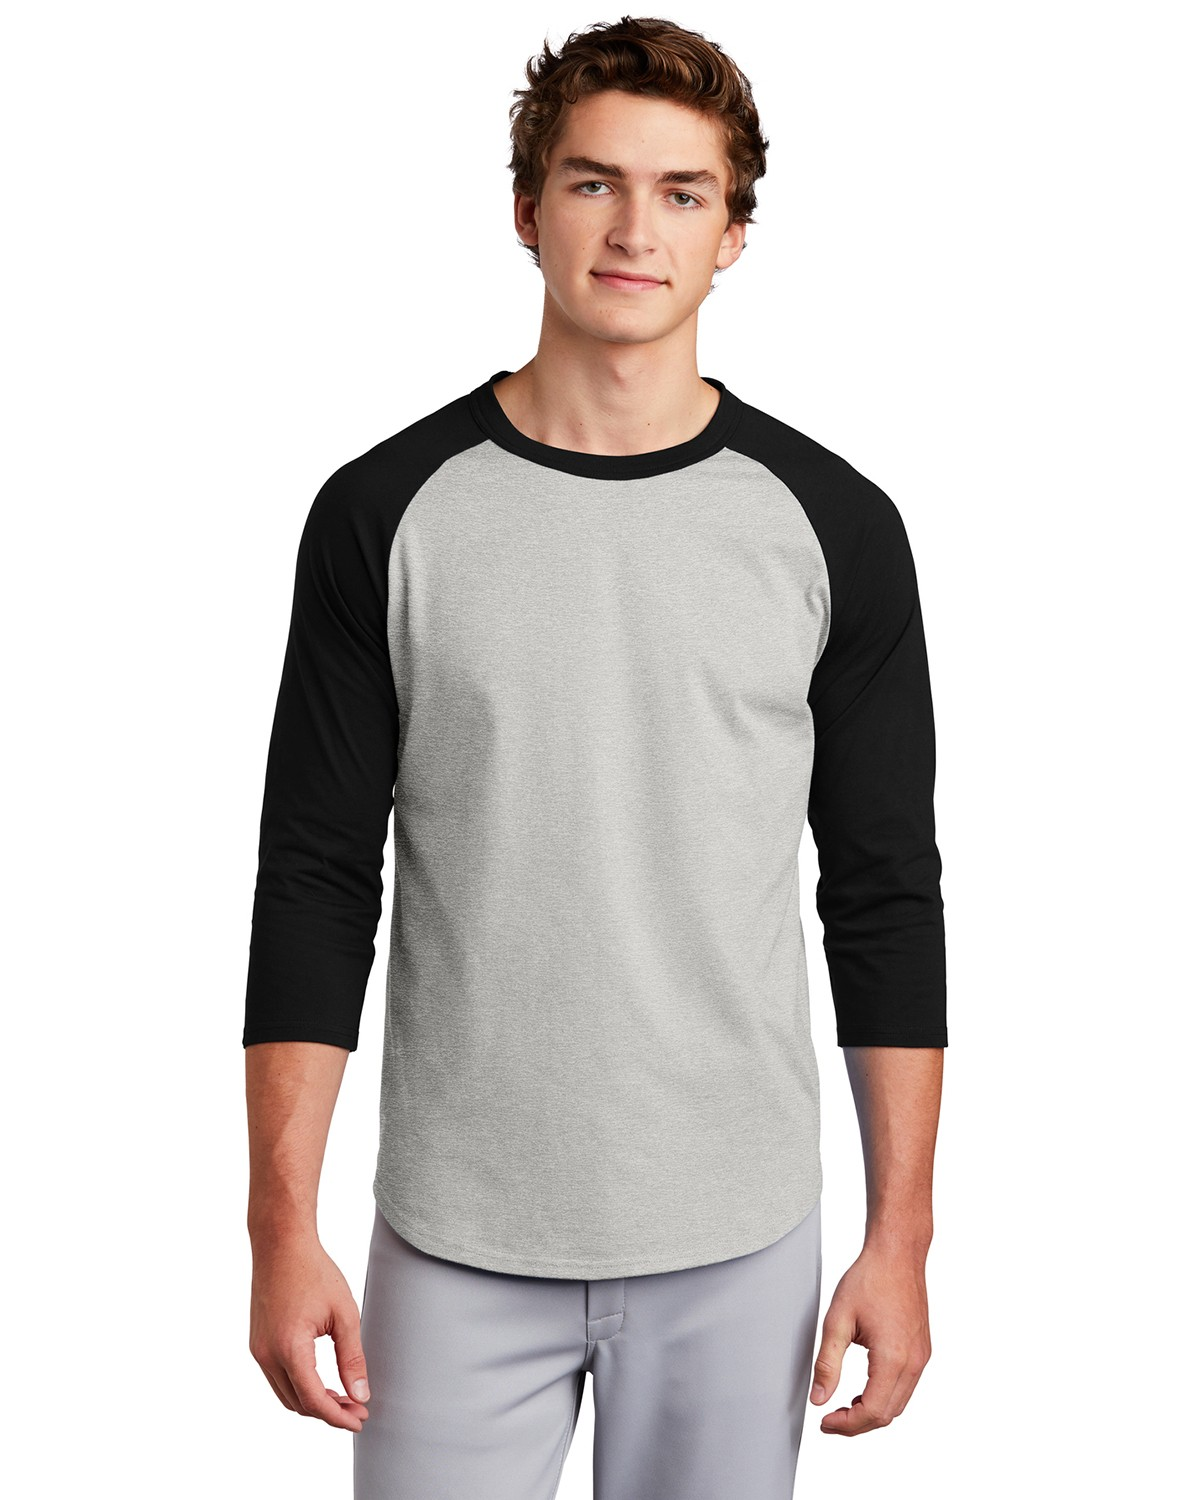 Sport-Tek T200 Colorblock Raglan Jersey - White/Heather Grey - XL T200